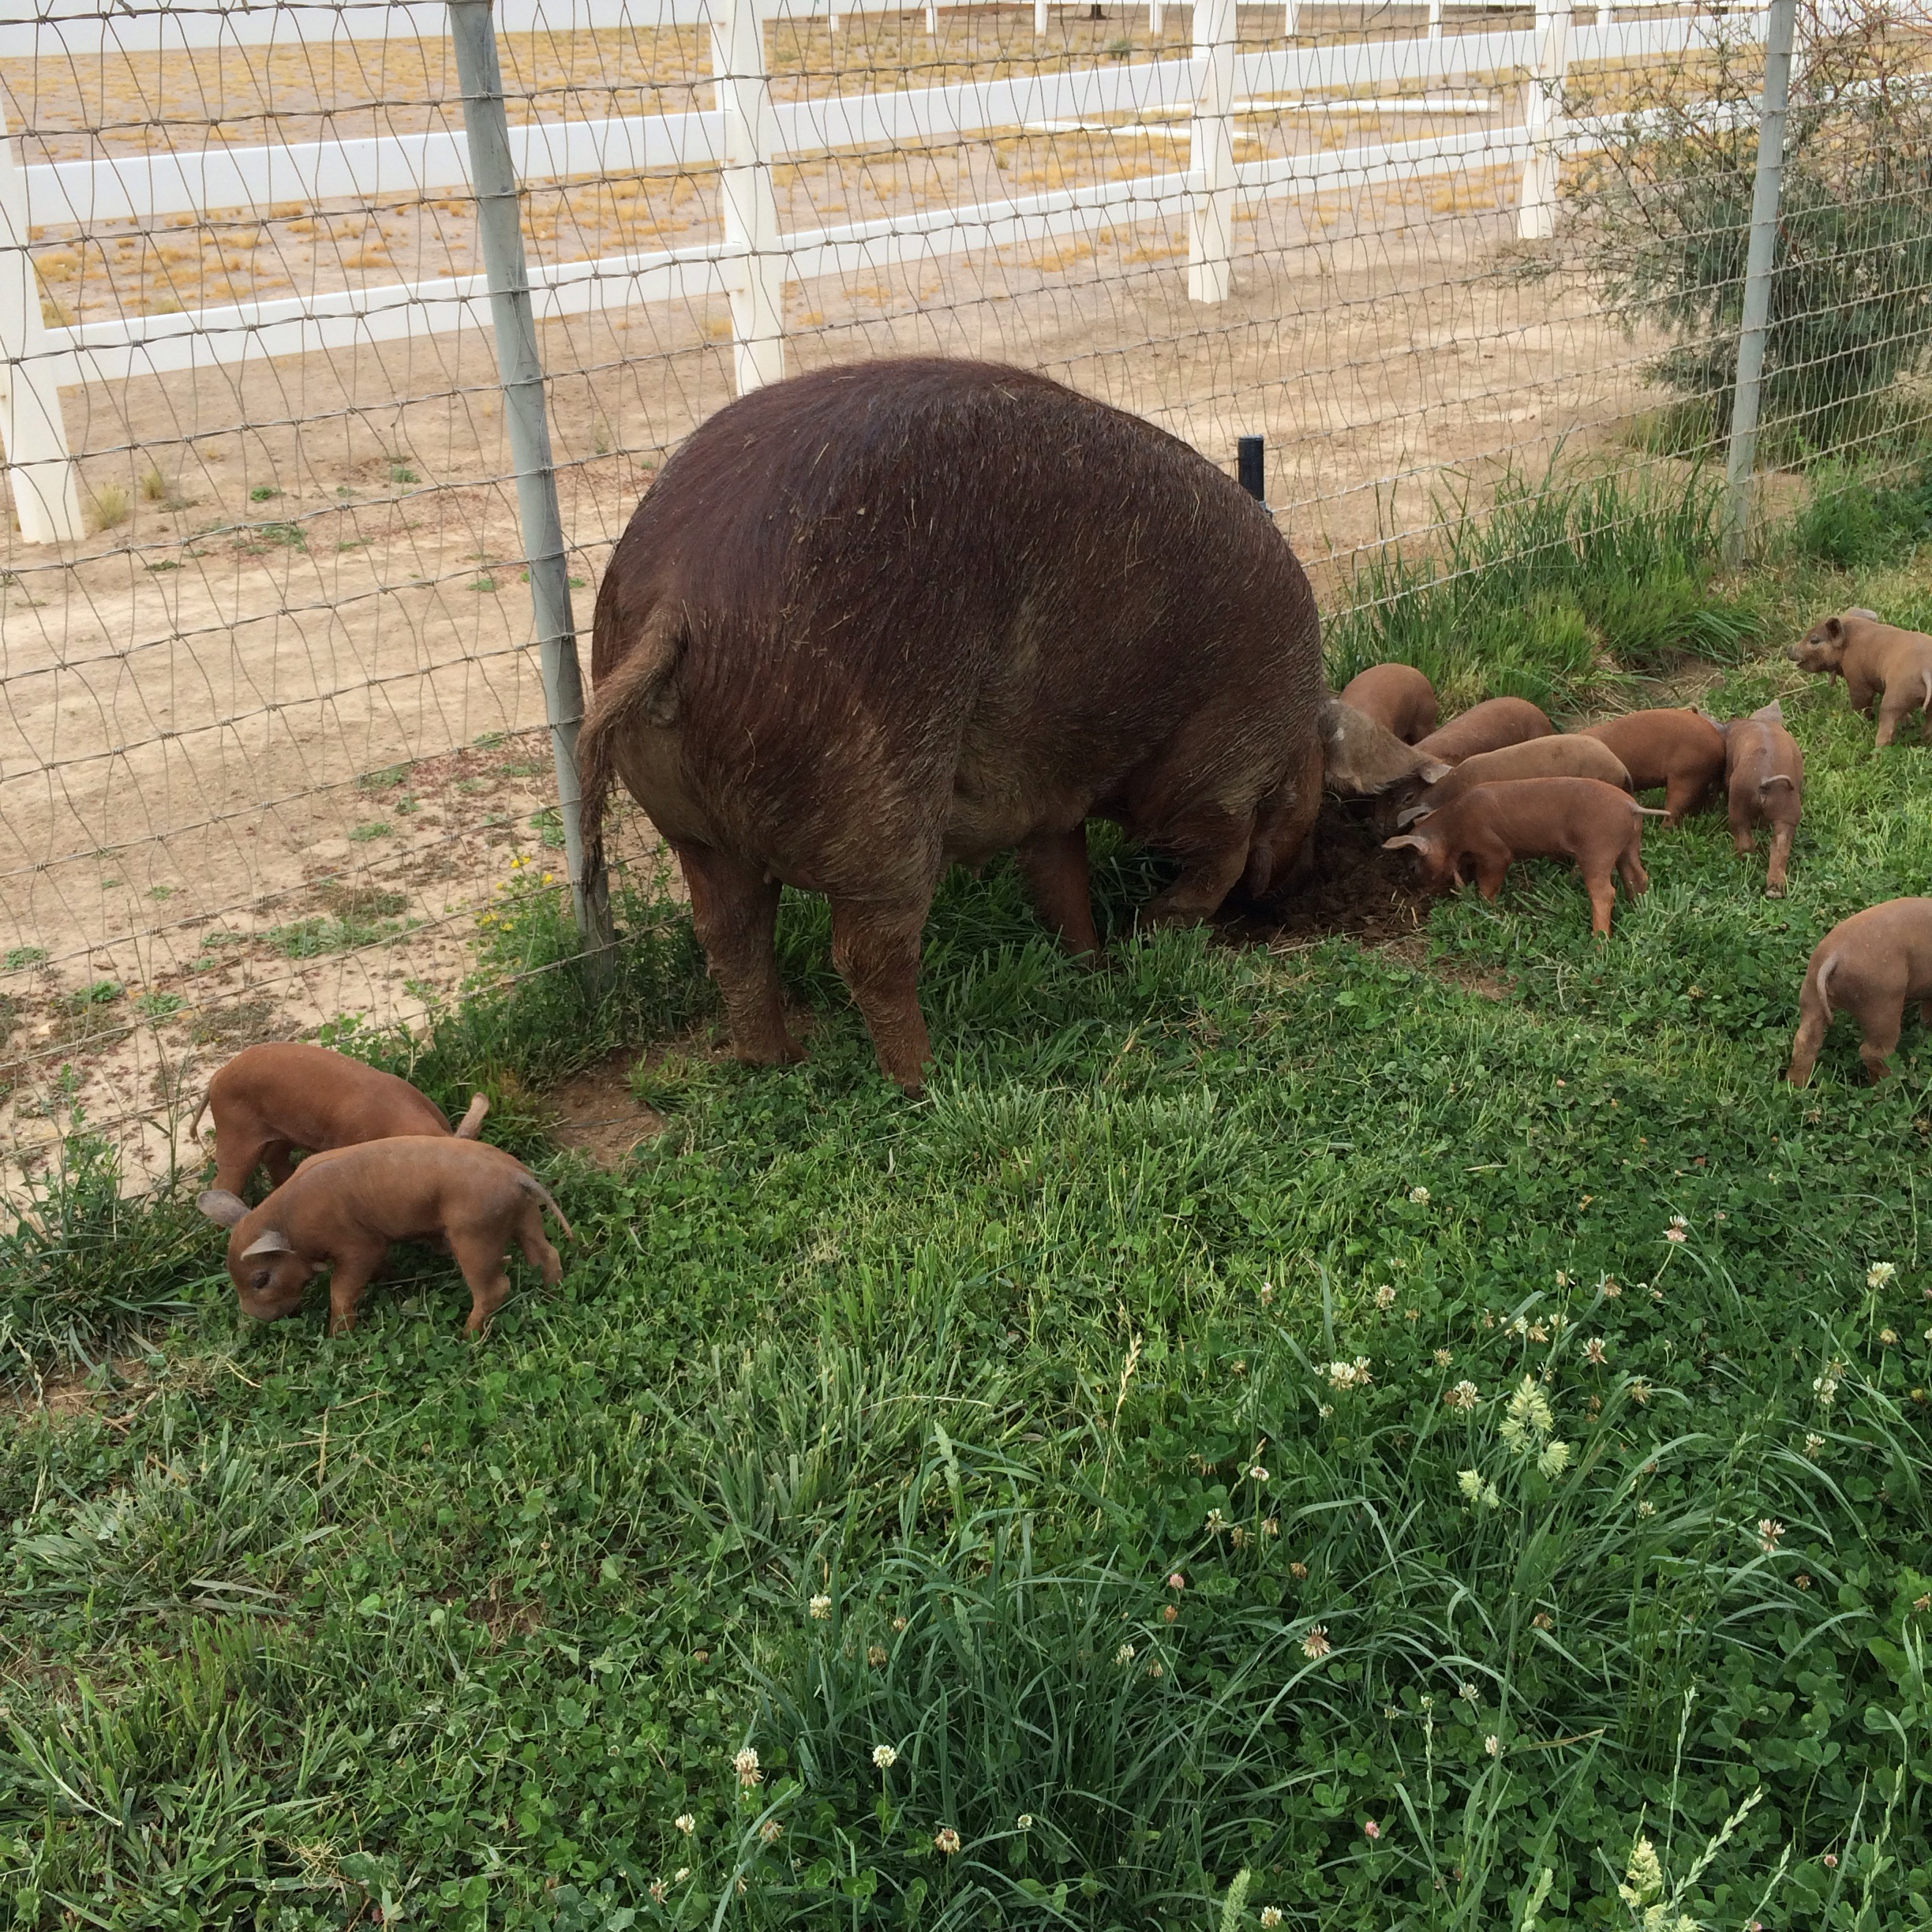 Roxy is showing piglets how to root in the pasture